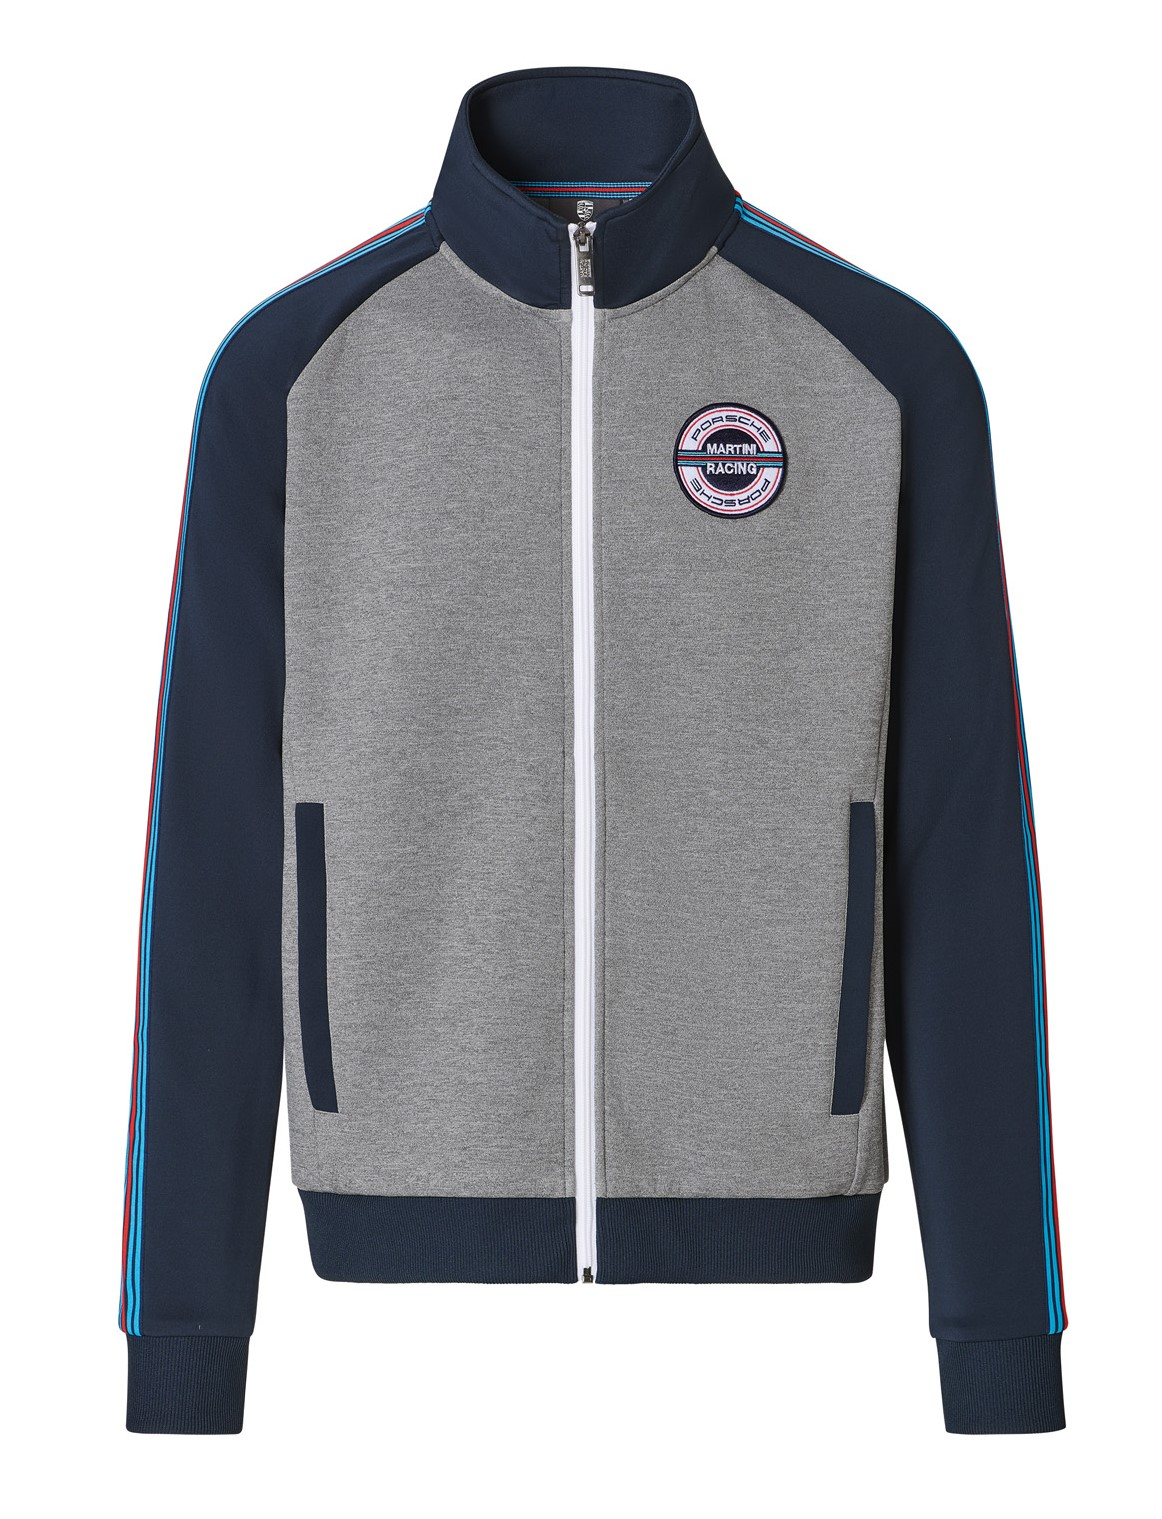 Men's Track Jacket - MARTINI RACING Collection